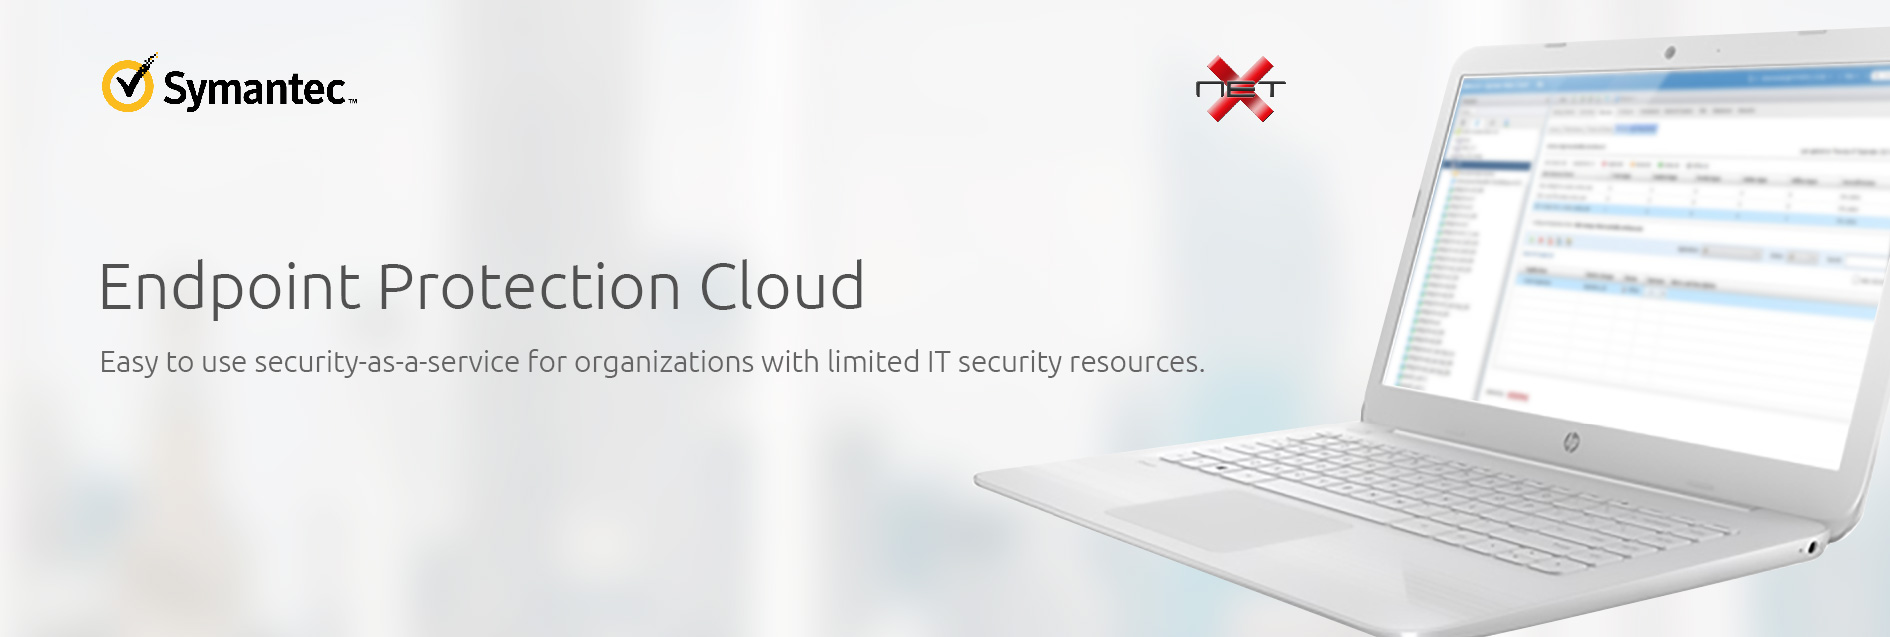 netx-symantec-Endpoint-Protection-Cloud-banner